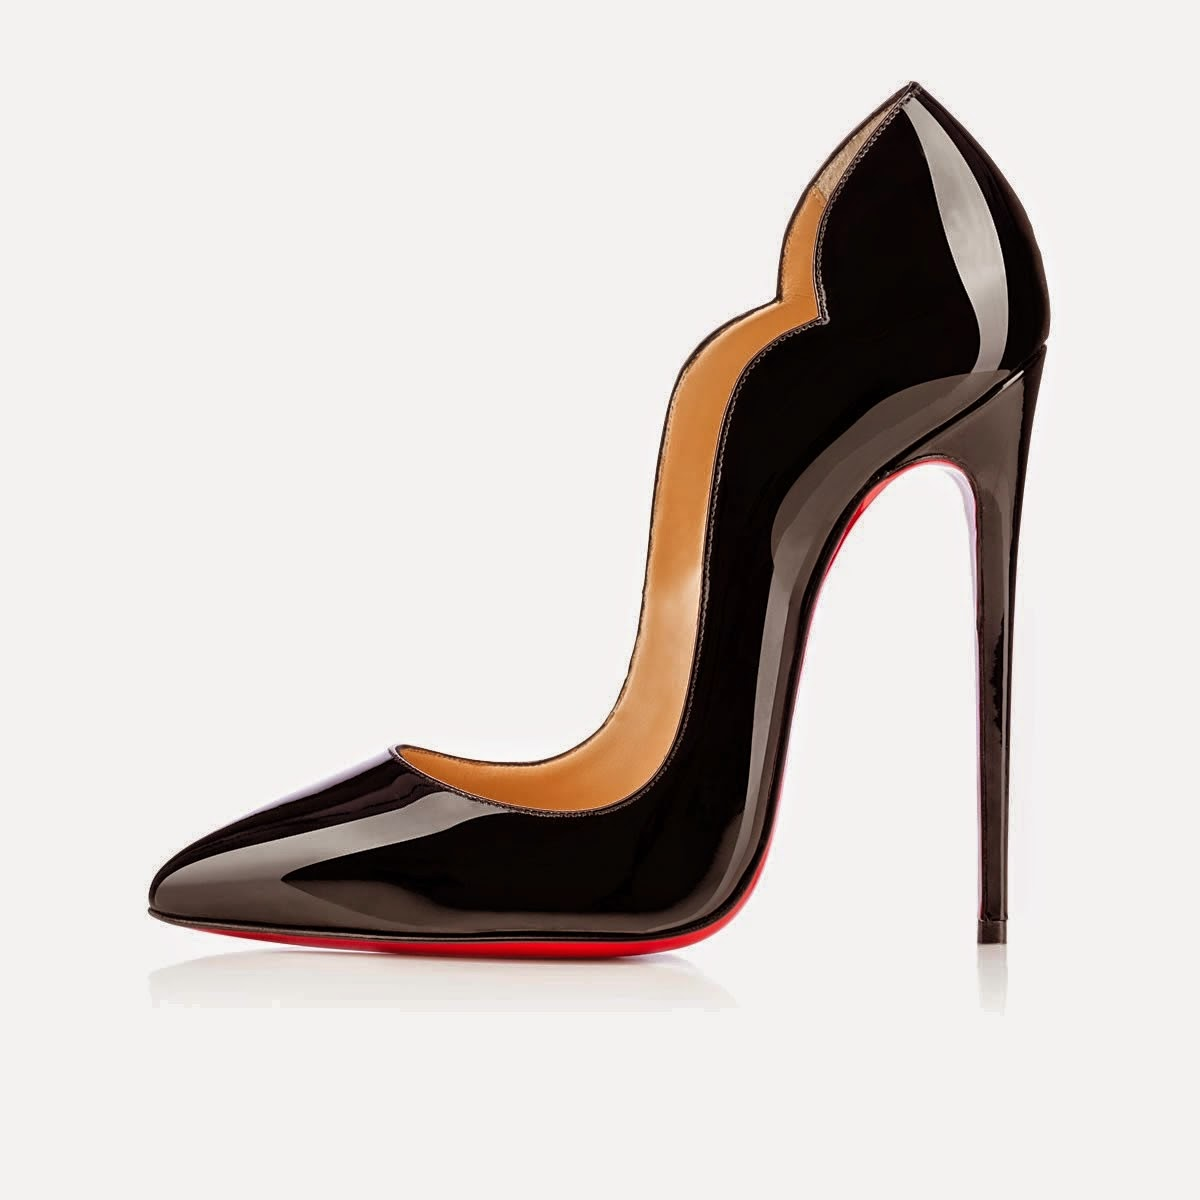 appearance for christian louboutin shoes 2015. Black Bedroom Furniture Sets. Home Design Ideas